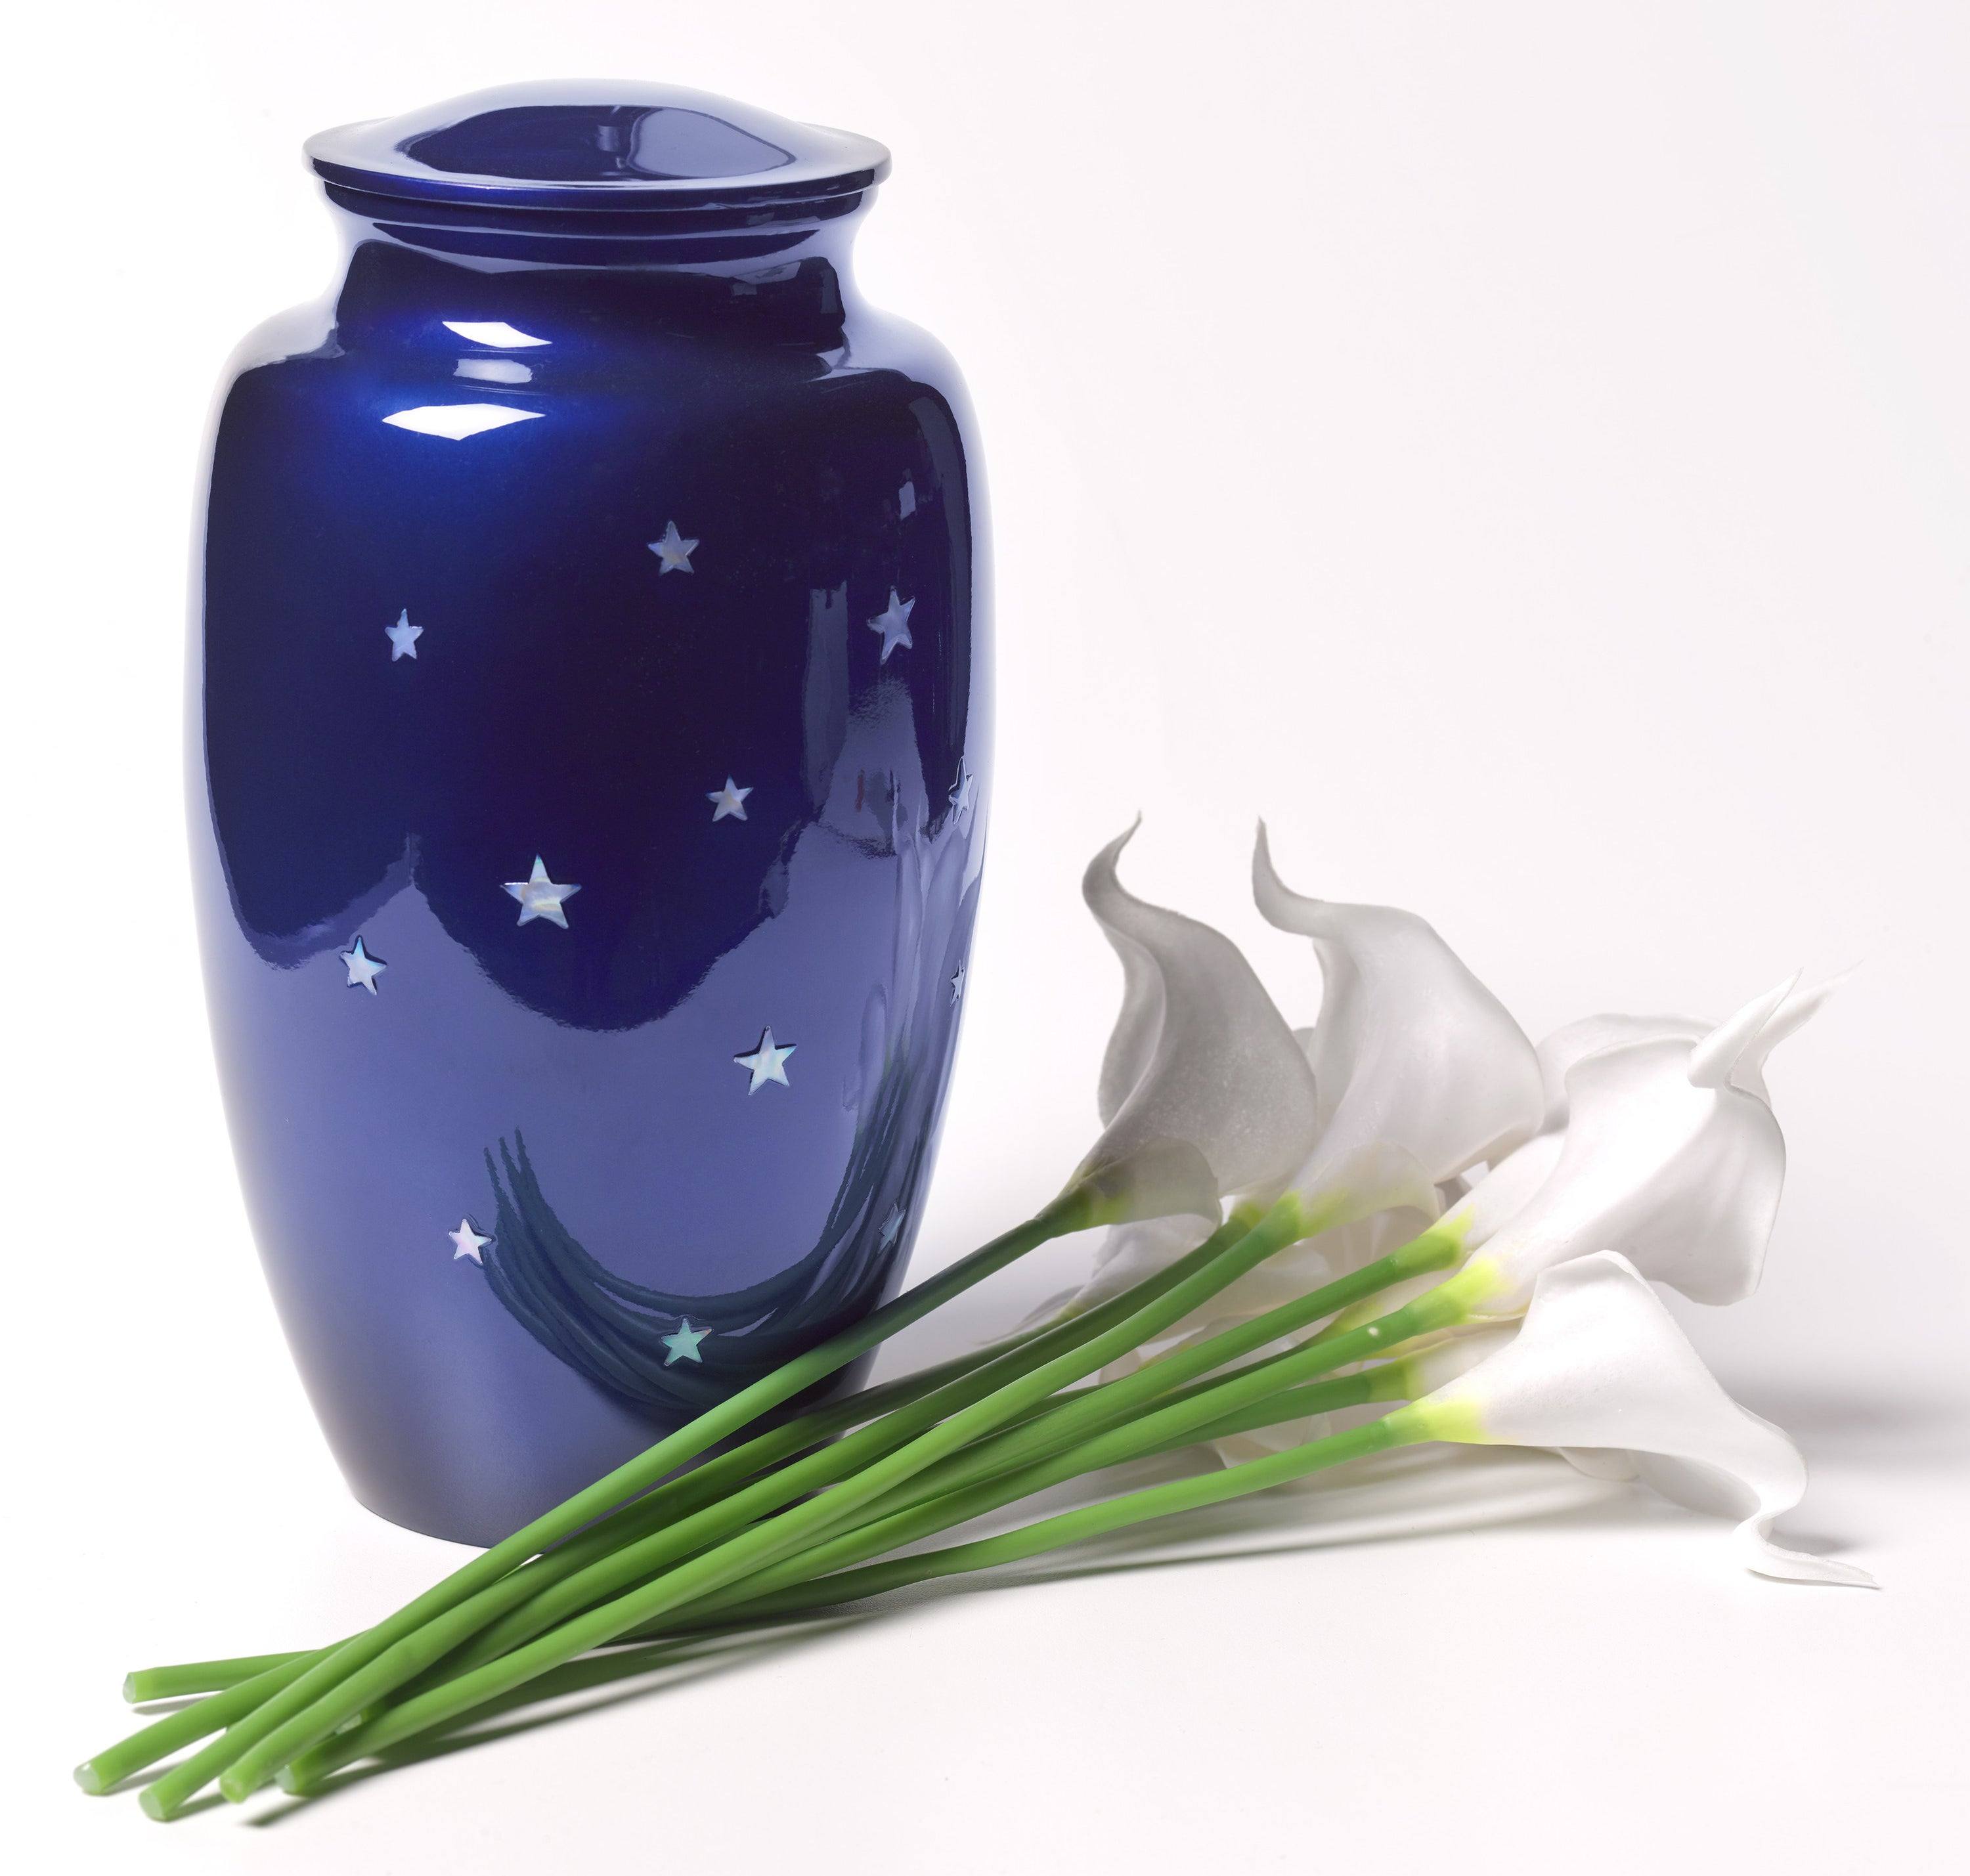 An urn next to several flowers